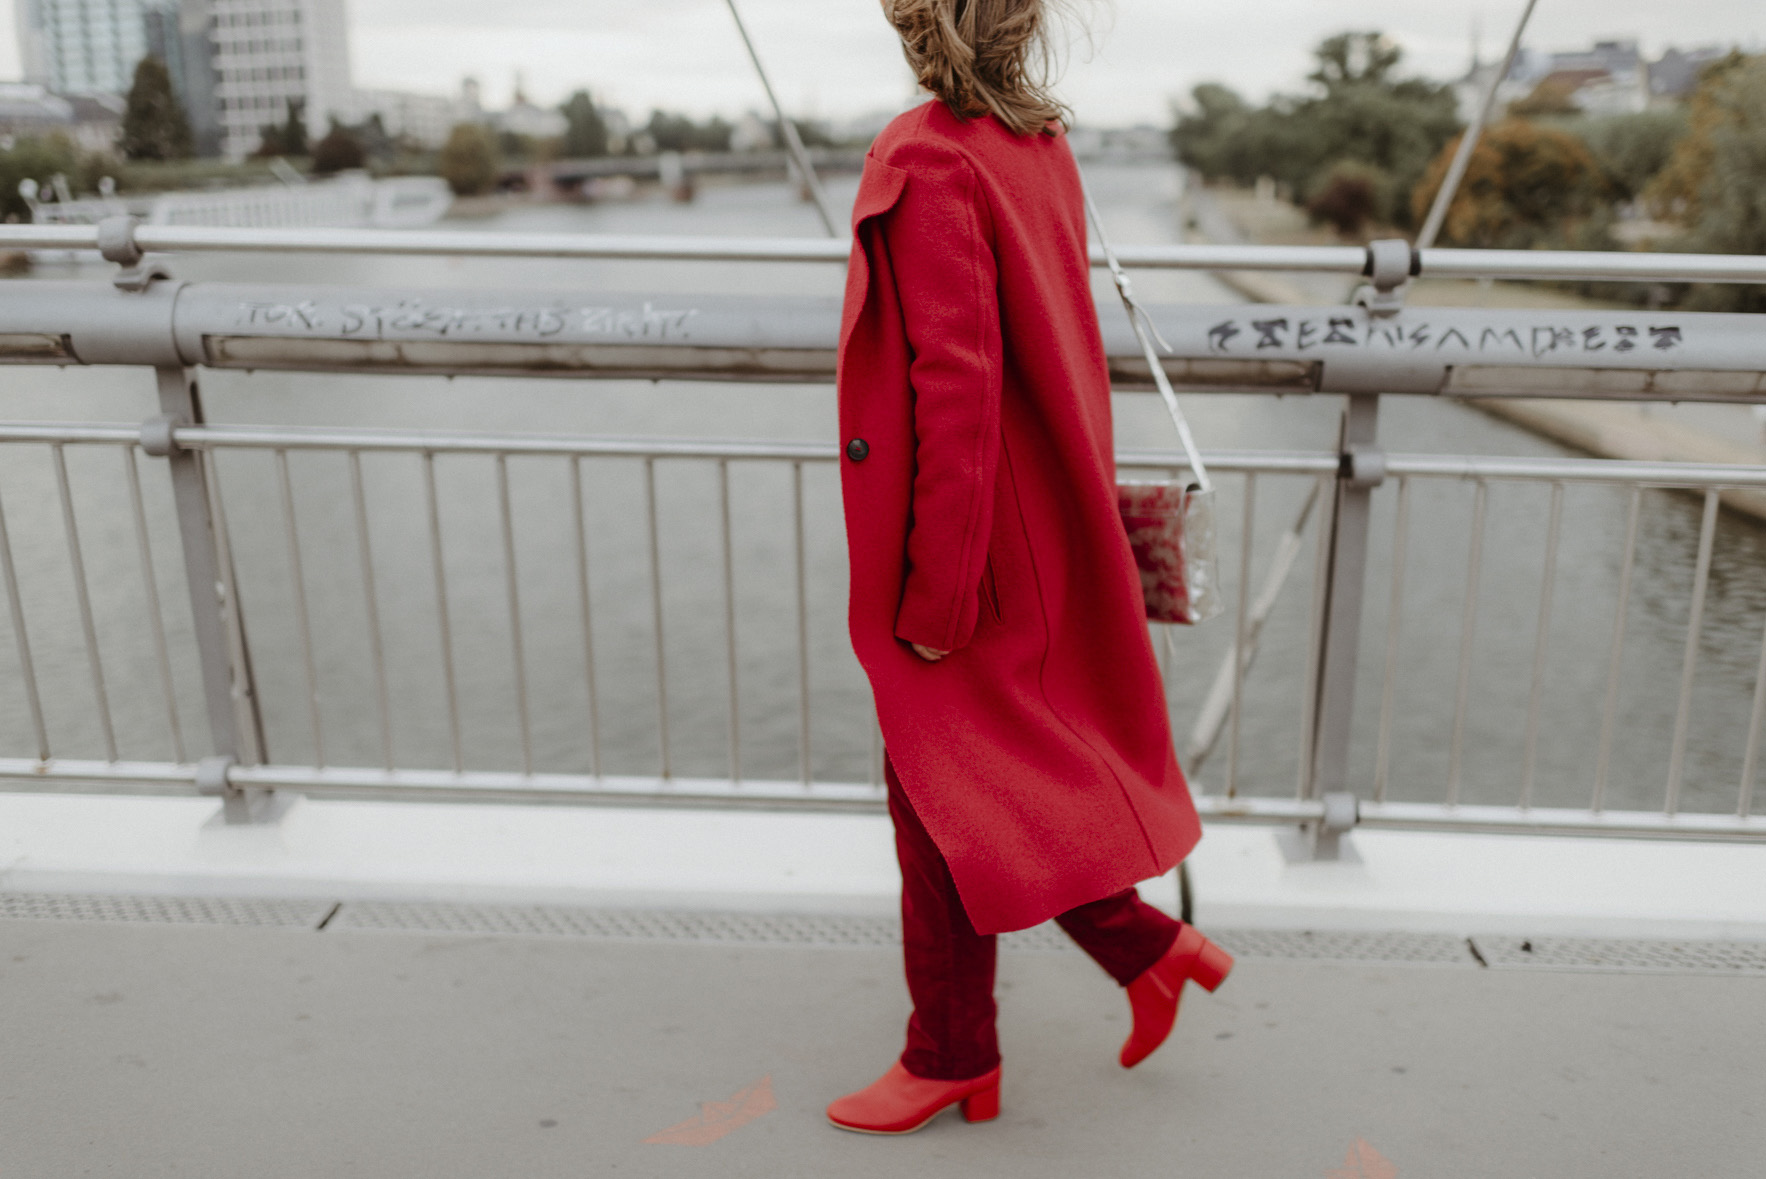 greenlooksgreat-lanius-ethical-fashion-red-coat